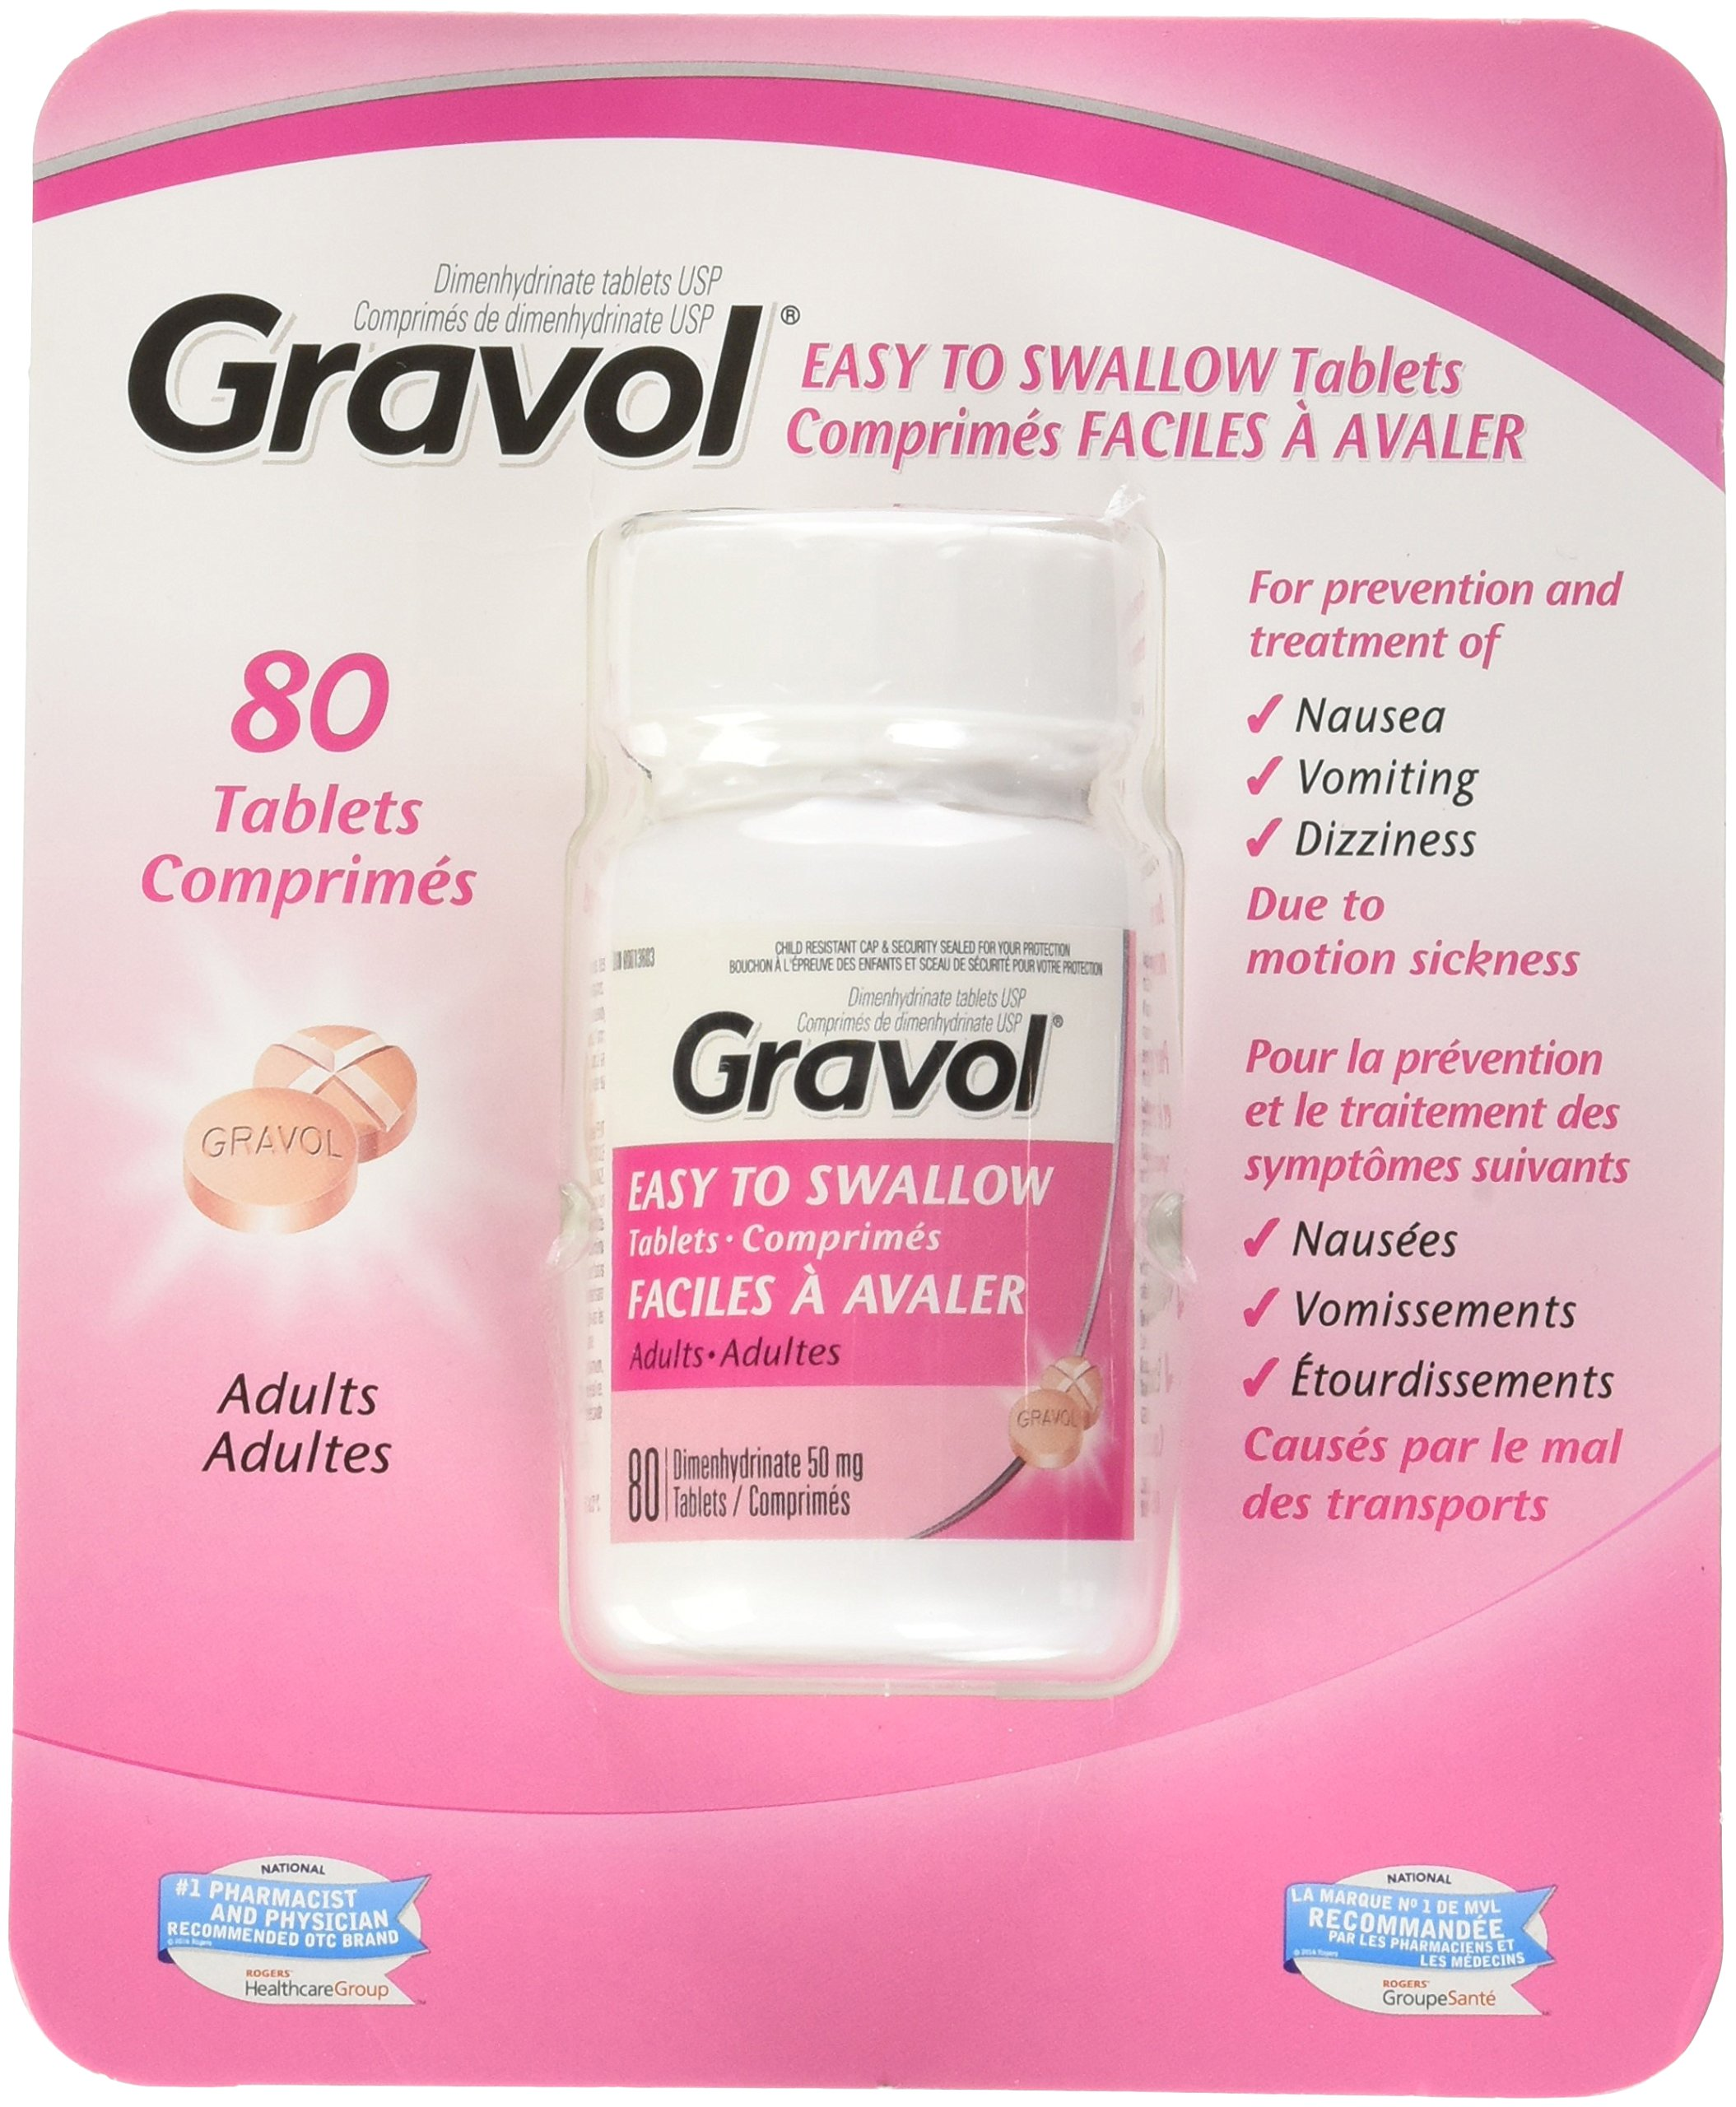 Gravol Easy To Swallow 80 Tablets Filmkote Antinauseant For Nausea, Vomiting, Dizziness and Motion Sickness 50 Milligram